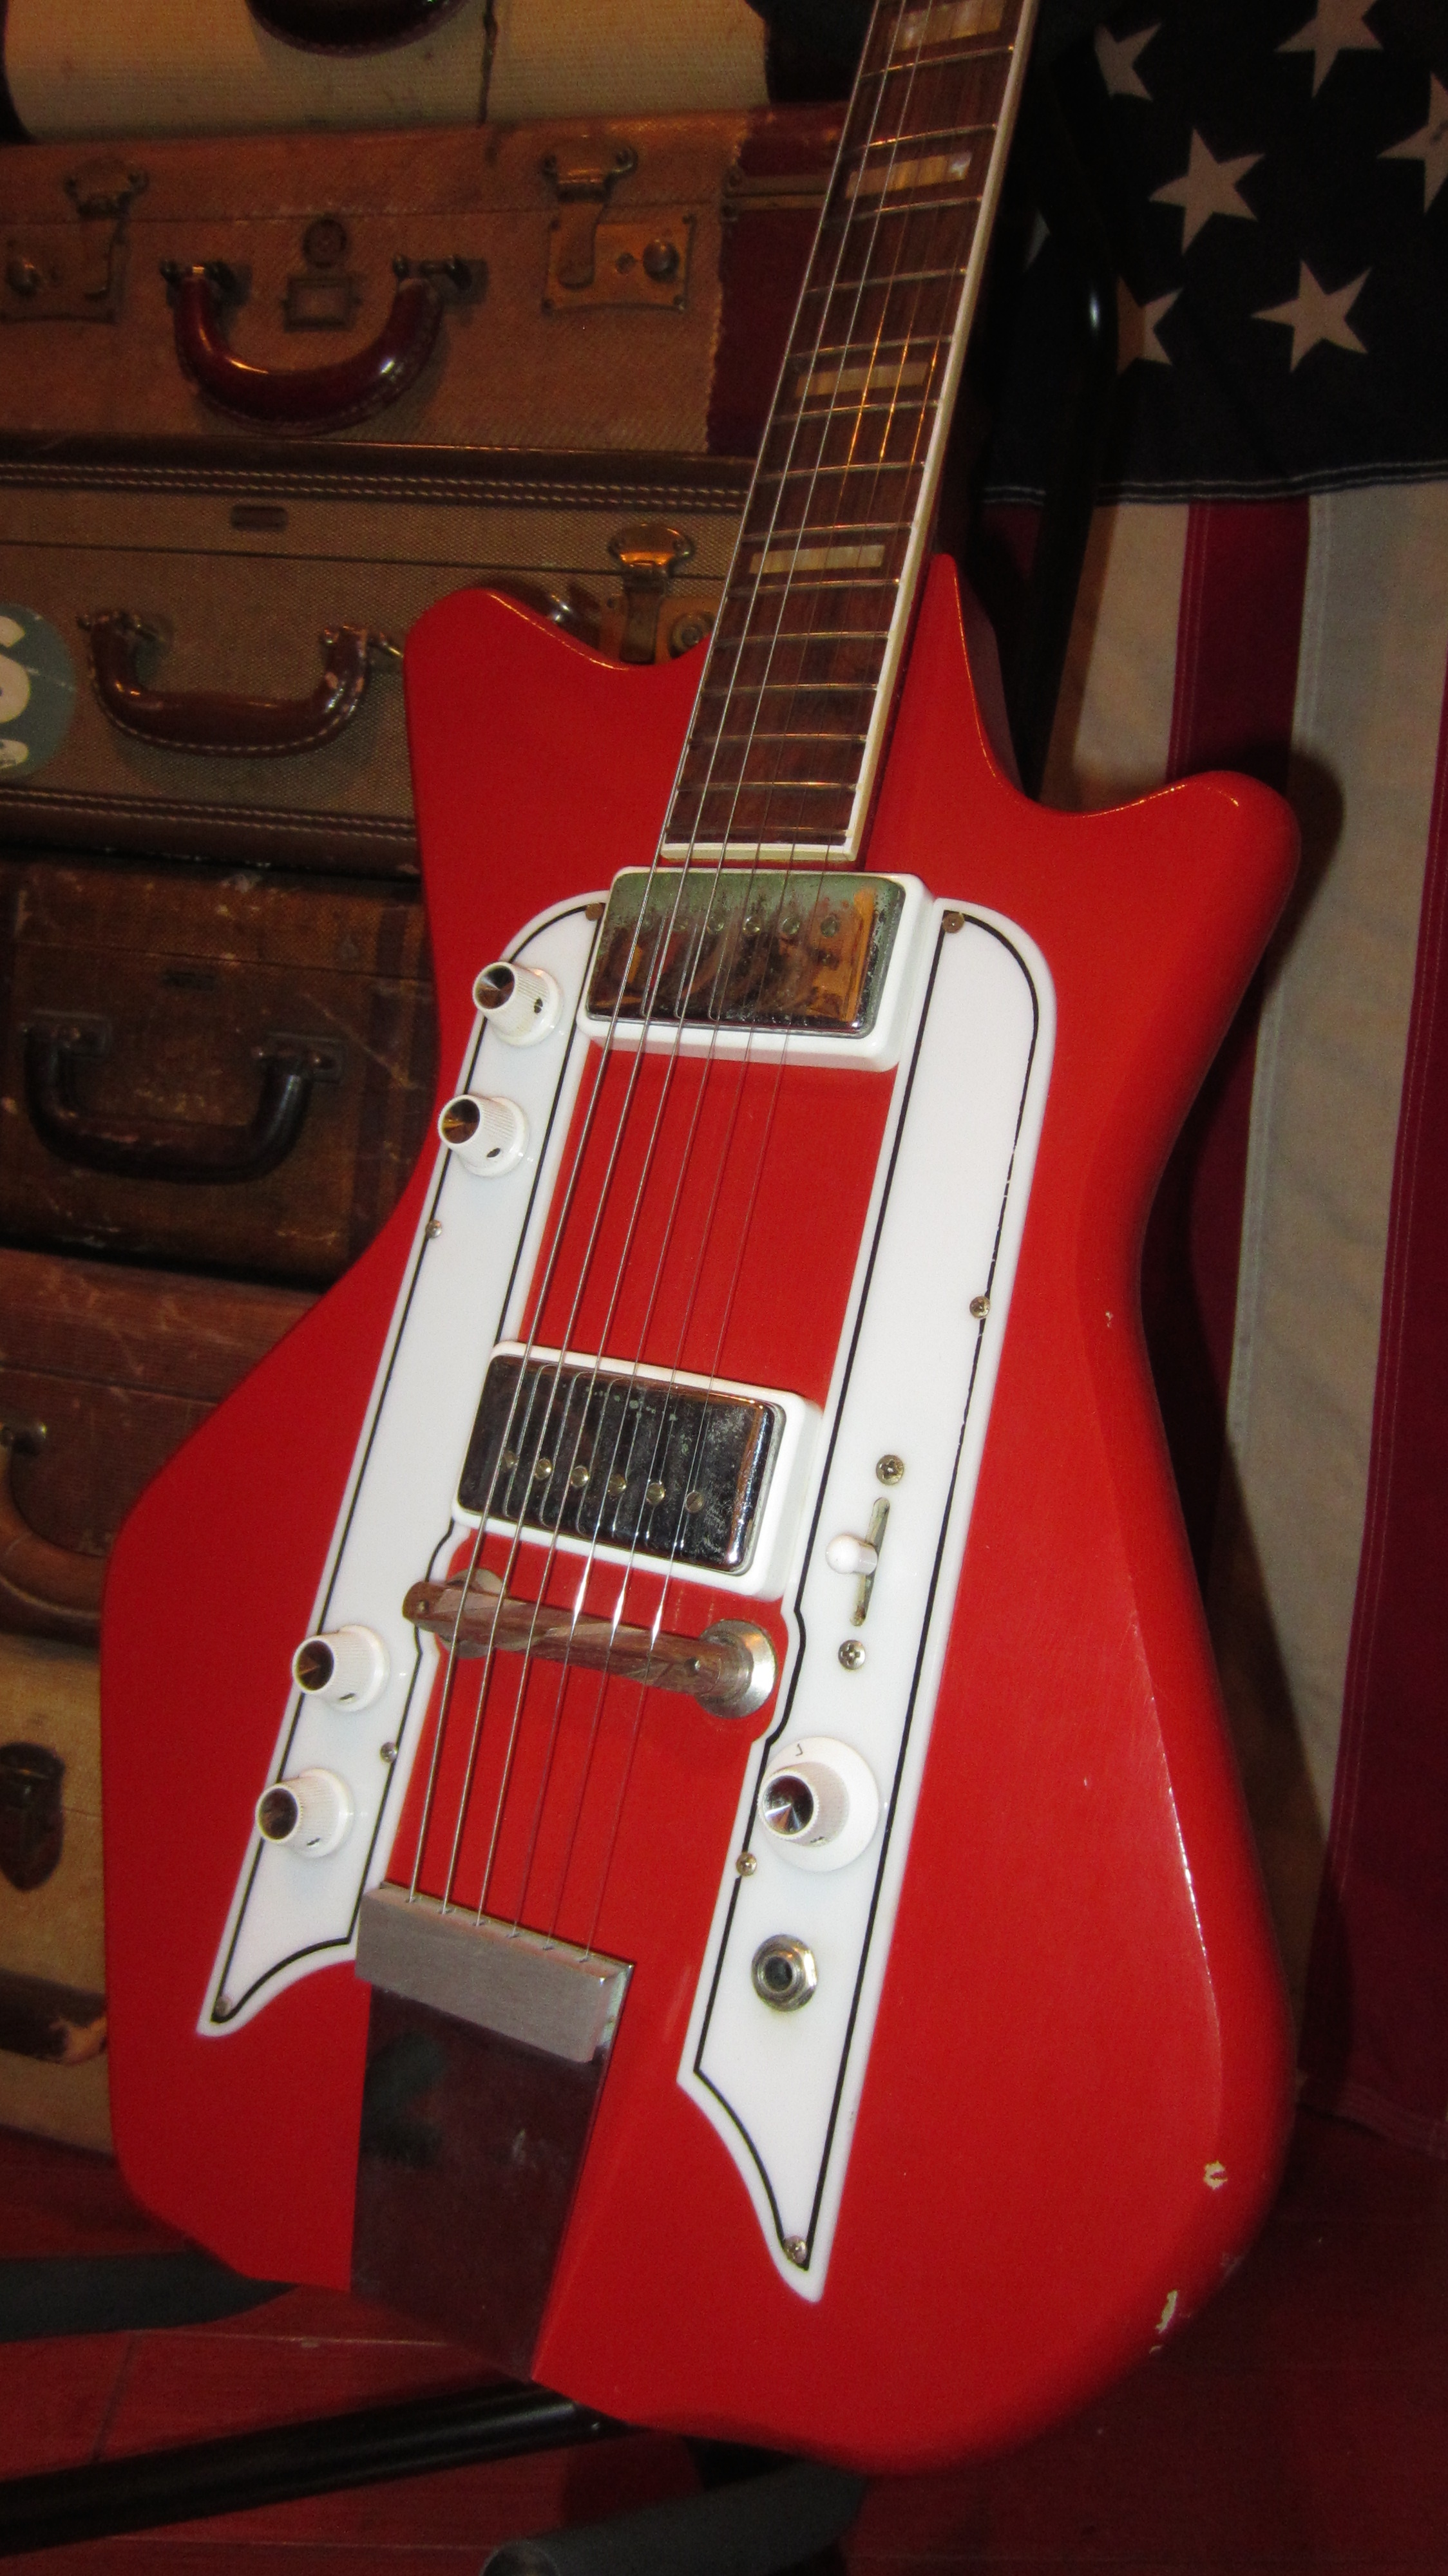 Visa Credit Card Login >> 1964 Airline Jetsons Jack White Red and White > Guitars ...